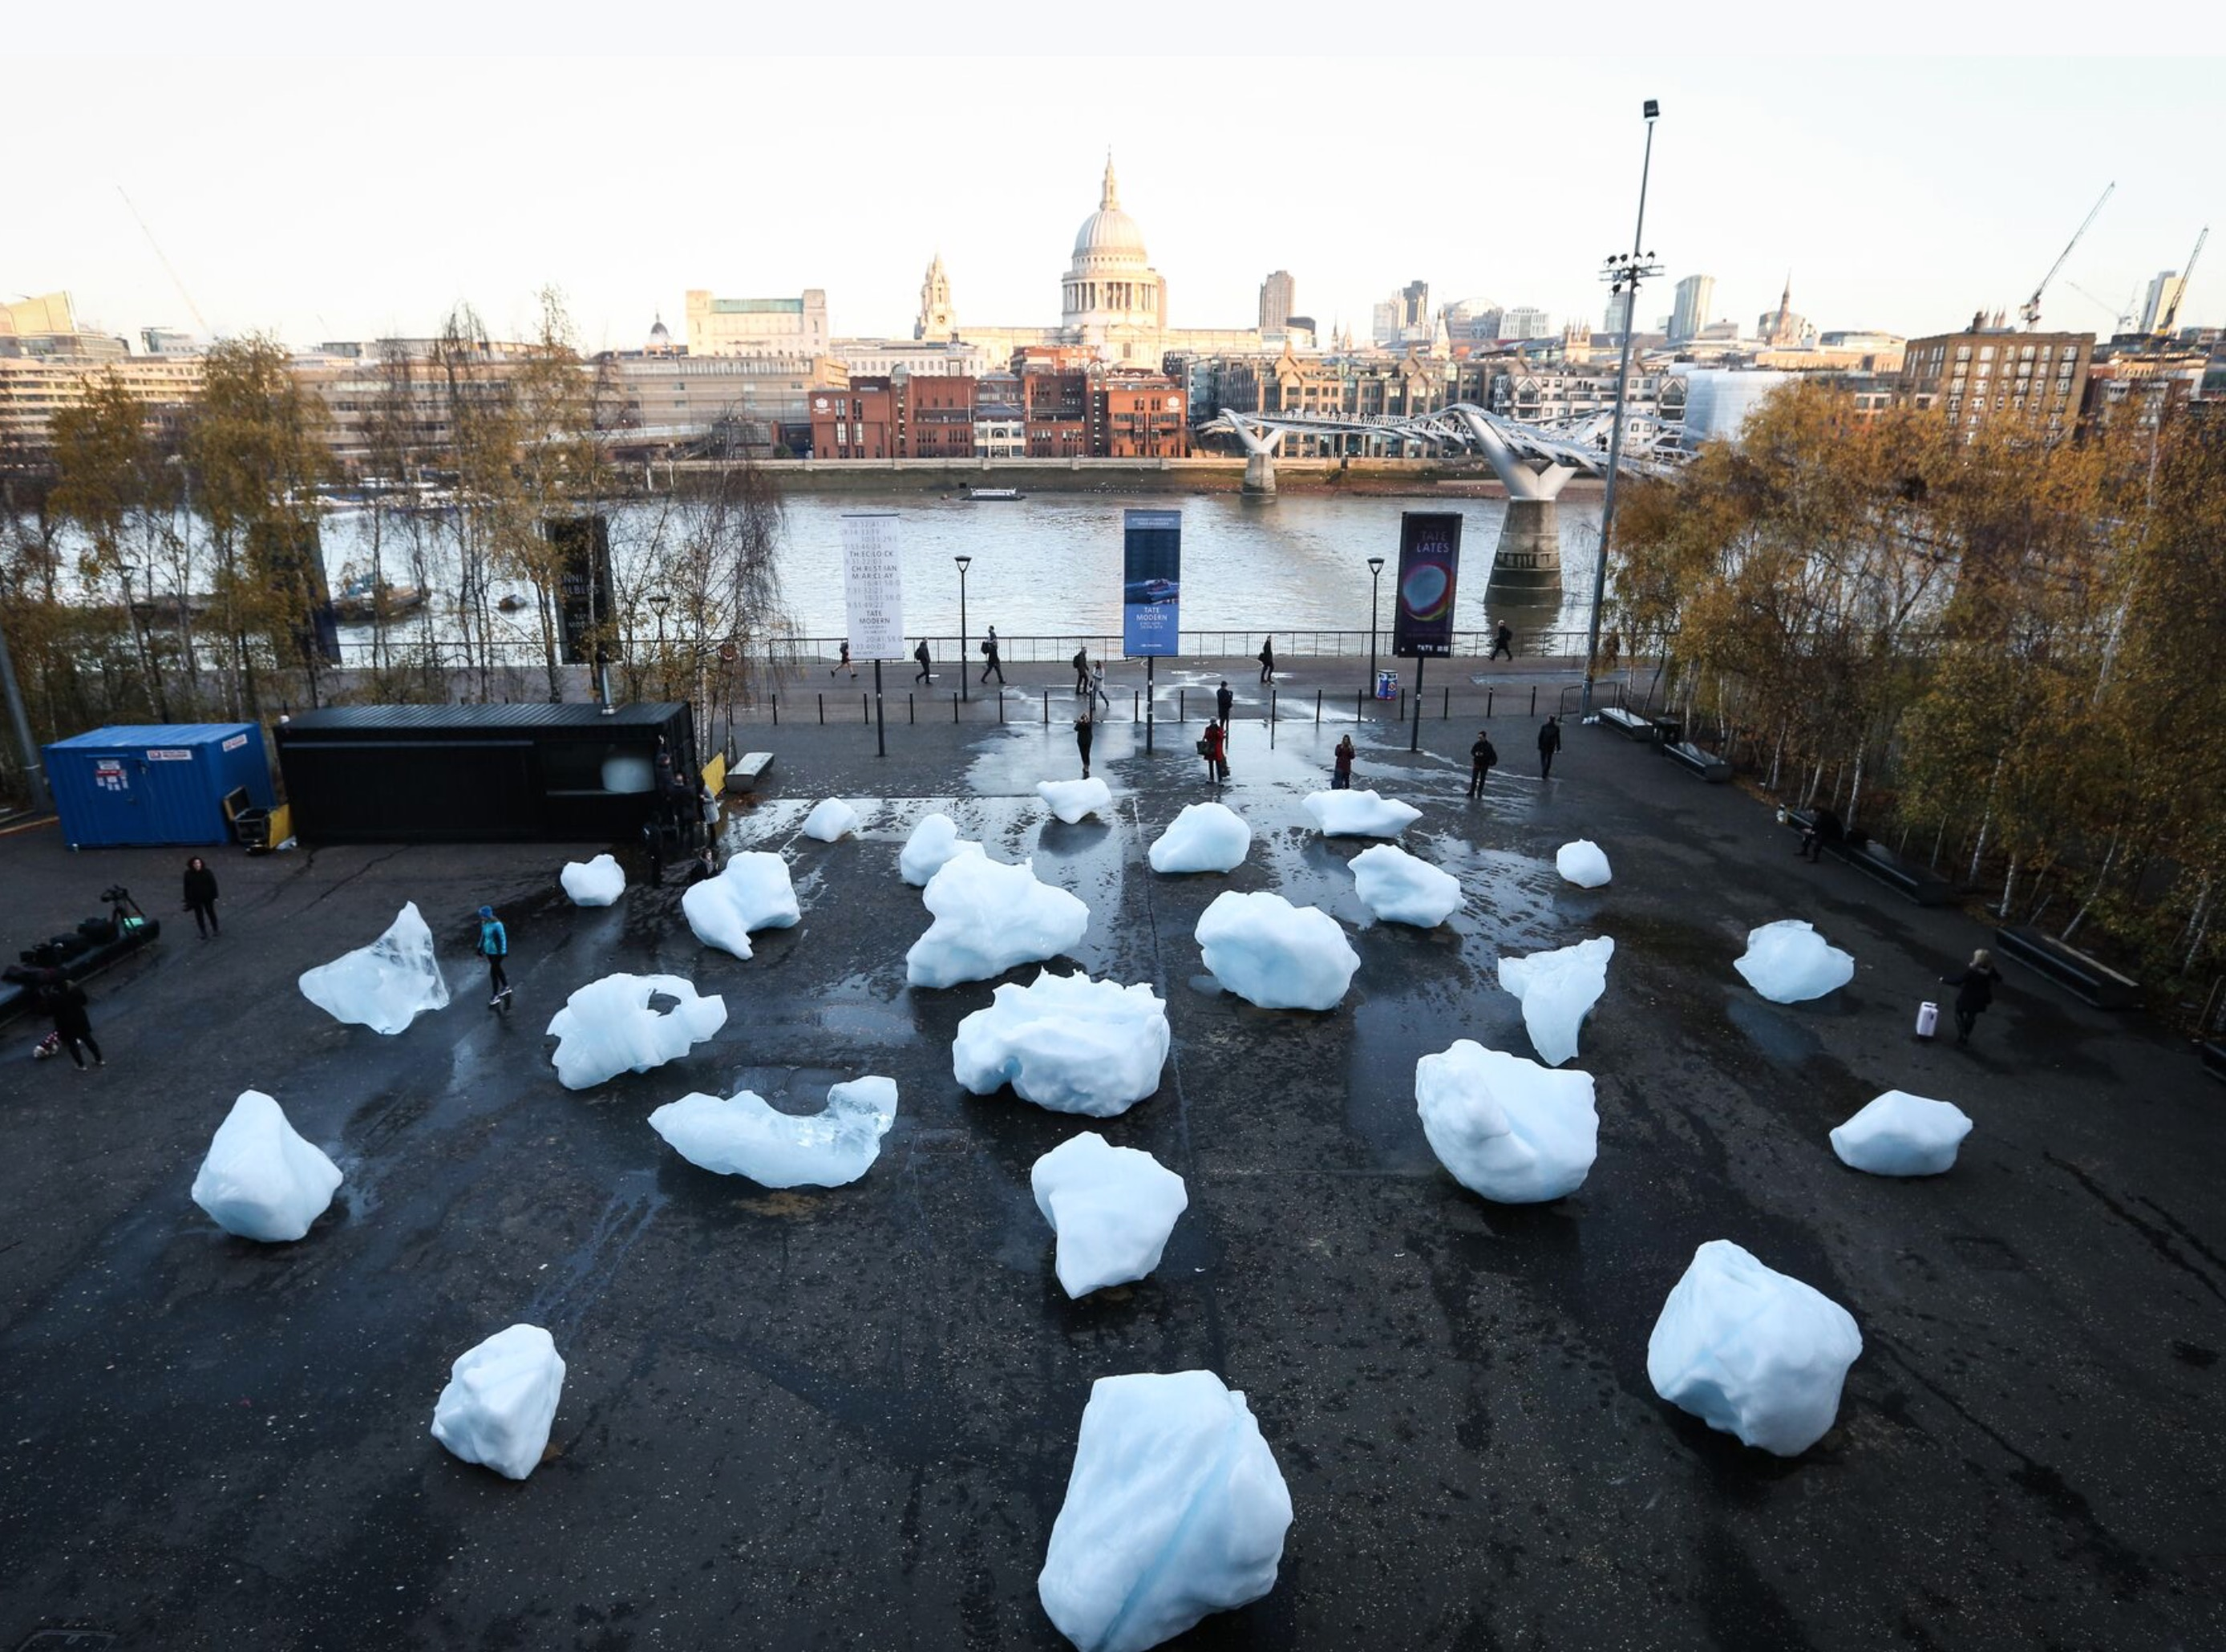 Ice Watch: the effects of global warming in Olafur Eliasson's installation  | Collater.al